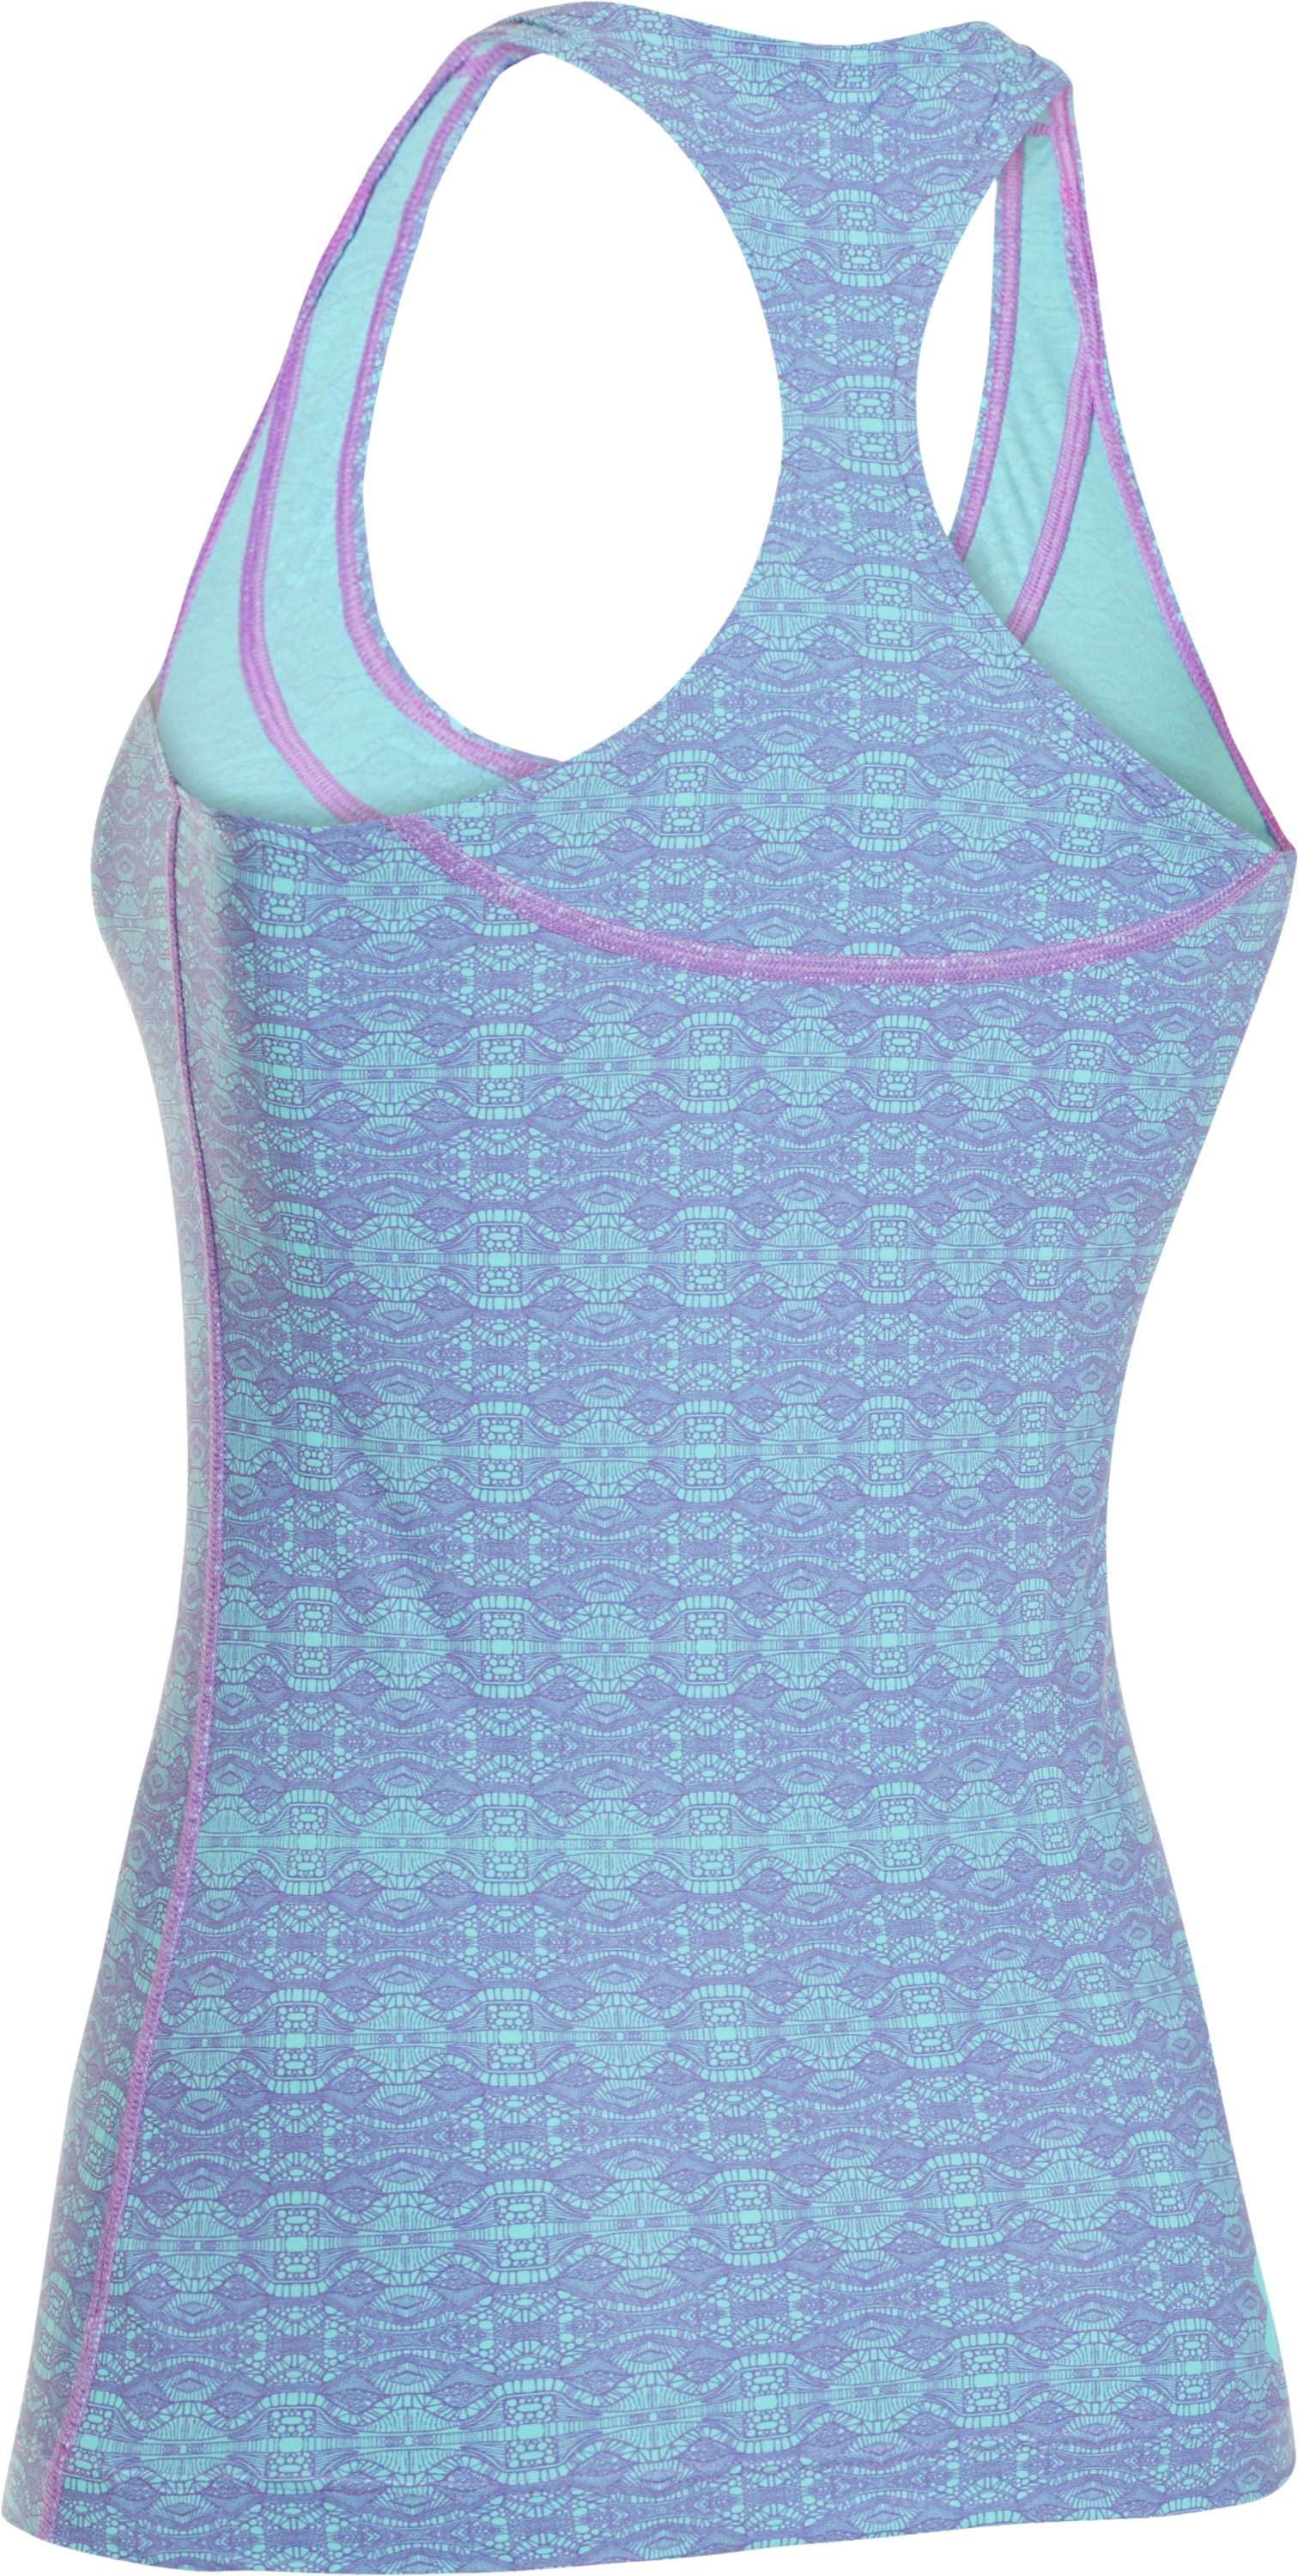 Women's UA Lianne Rash Guard Tank Top, EXOTIC BLOOM